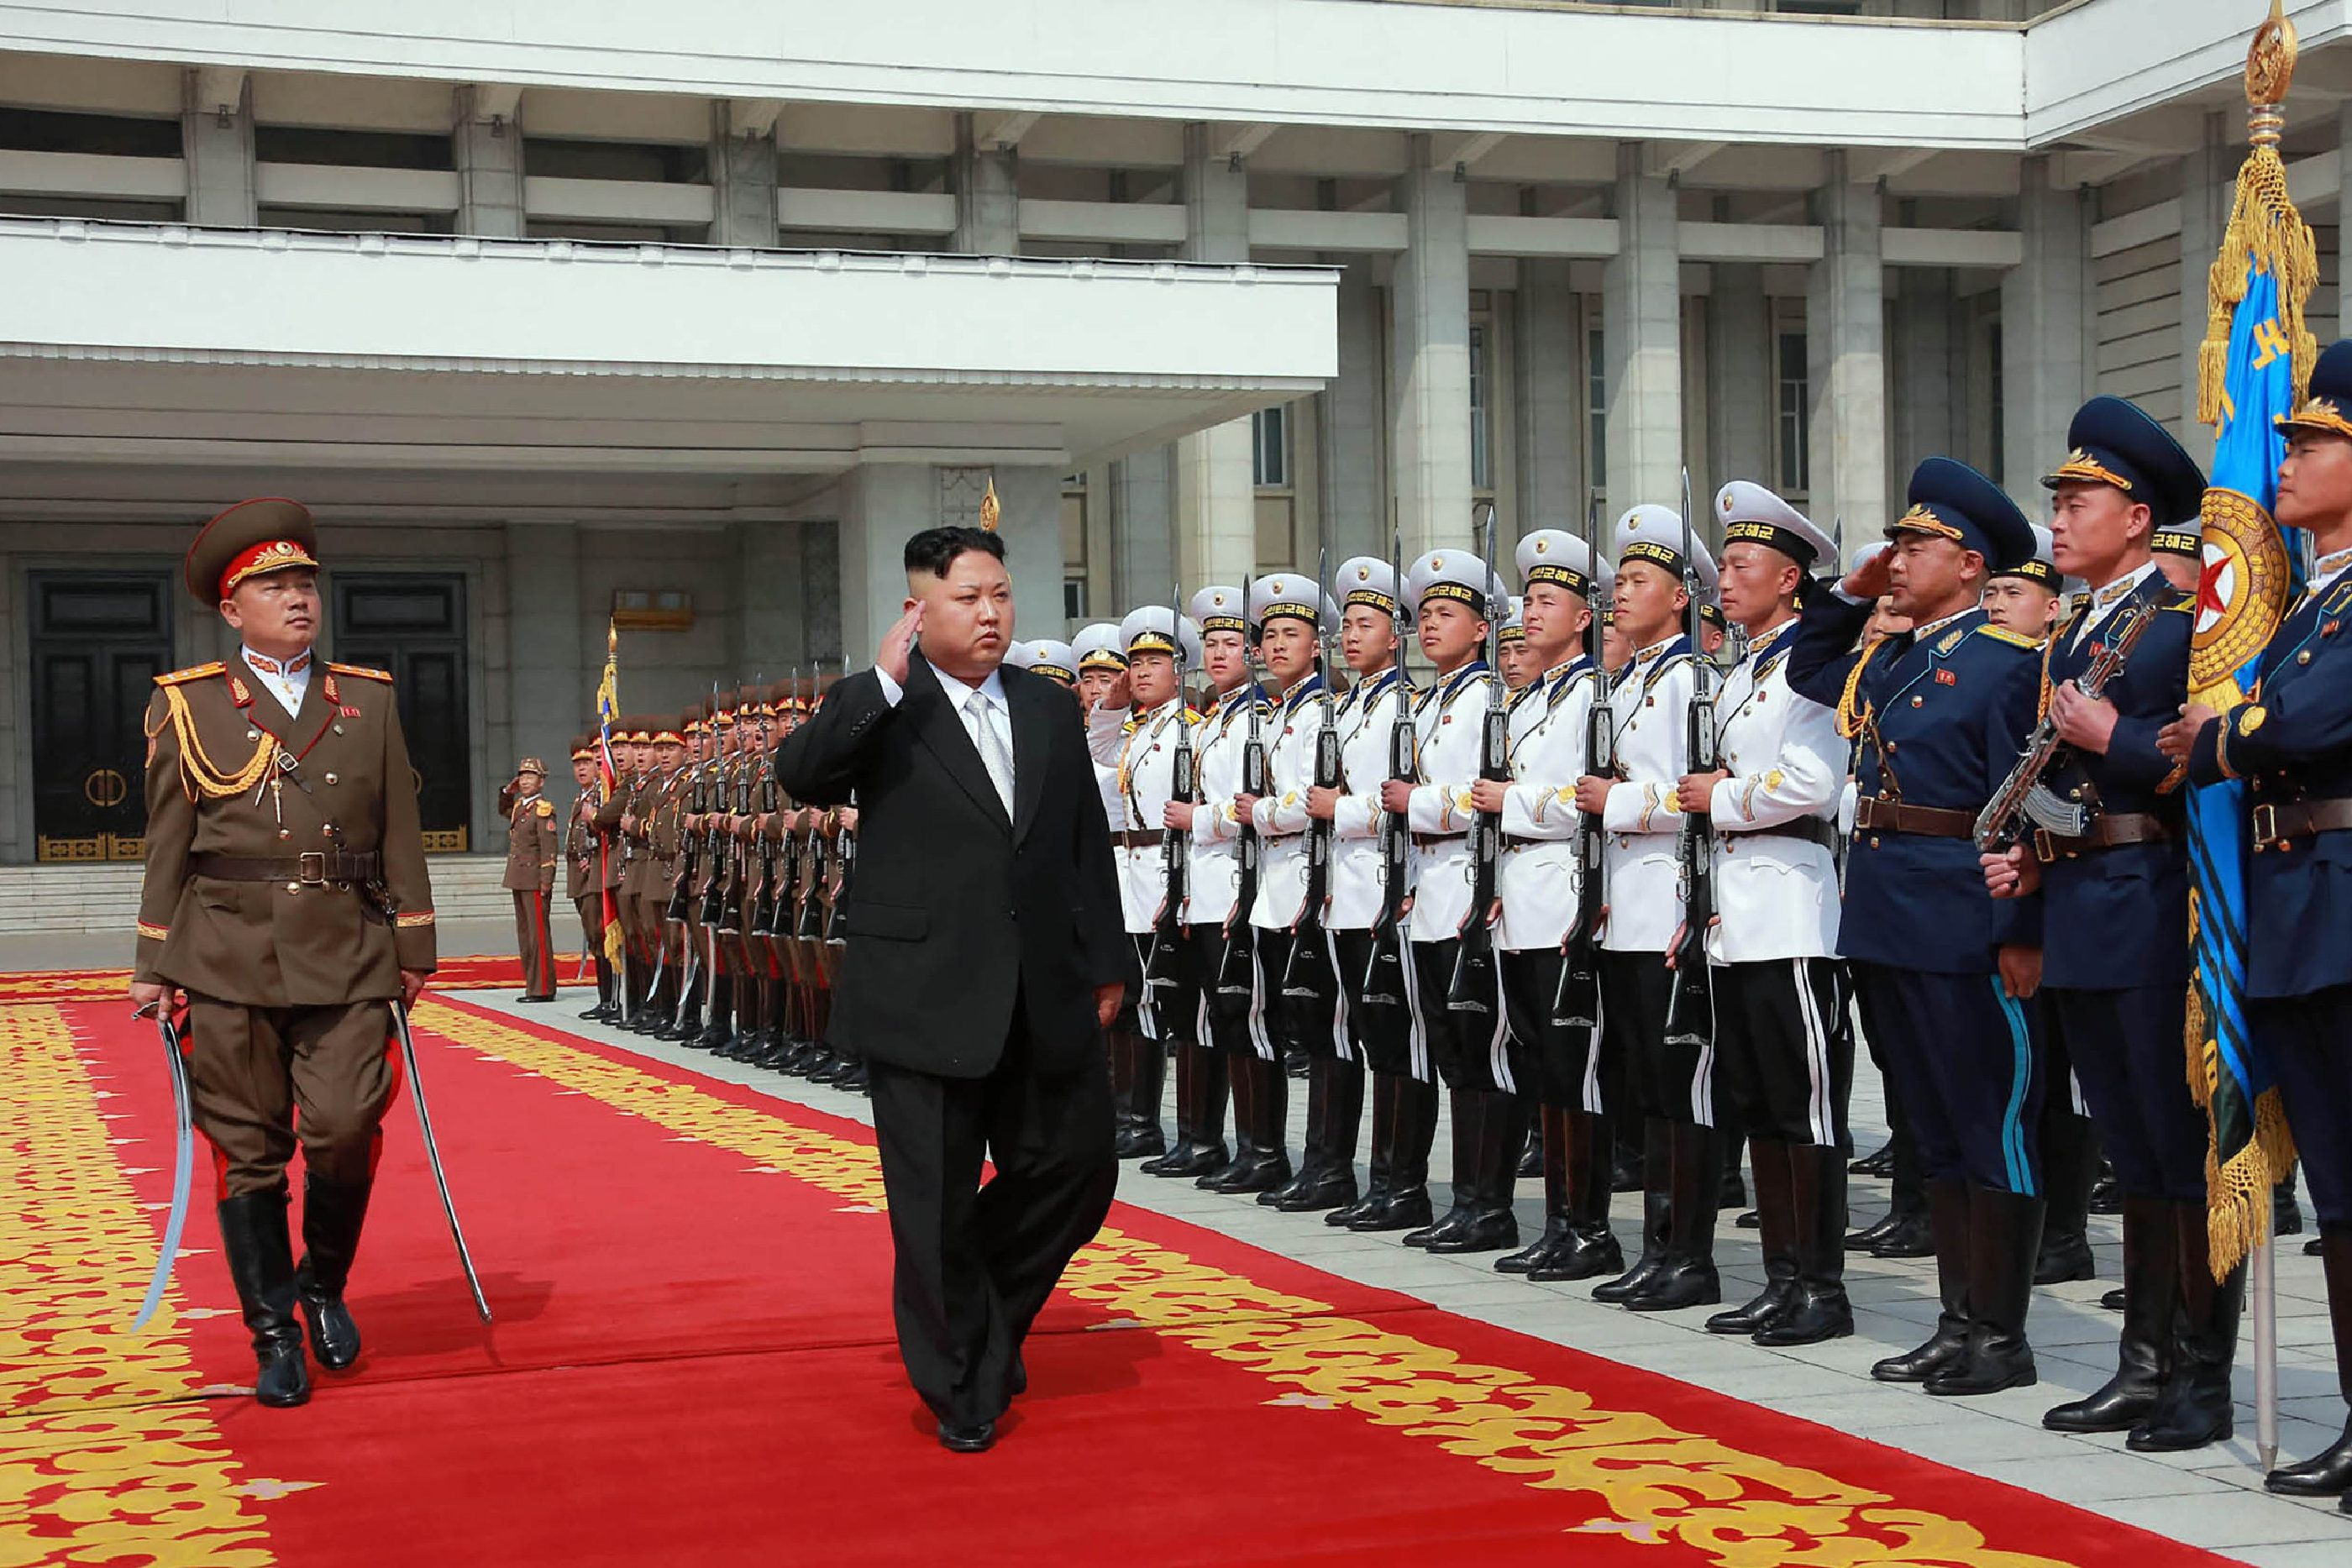 This April 15, 2017 picture released from North Korea's official Korean Central News Agency (KCNA) on April 16, 2017 shows North Korean leader Kim Jong-Un (C) arriving for a military parade in Pyongyang marking the 105th anniversary of the birth of late North Korean leader Kim Il-Sung. / AFP PHOTO / KCNA VIA KNS / STR / South Korea OUT / REPUBLIC OF KOREA OUT   ---EDITORS NOTE--- RESTRICTED TO EDITORIAL USE - MANDATORY CREDIT 'AFP PHOTO/KCNA VIA KNS' - NO MARKETING NO ADVERTISING CAMPAIGNS - DISTRIBUTED AS A SERVICE TO CLIENTS THIS PICTURE WAS MADE AVAILABLE BY A THIRD PARTY. AFP CAN NOT INDEPENDENTLY VERIFY THE AUTHENTICITY, LOCATION, DATE AND CONTENT OF THIS IMAGE. THIS PHOTO IS DISTRIBUTED EXACTLY AS RECEIVED BY AFP.  /         (Photo credit should read STR/AFP/Getty Images)